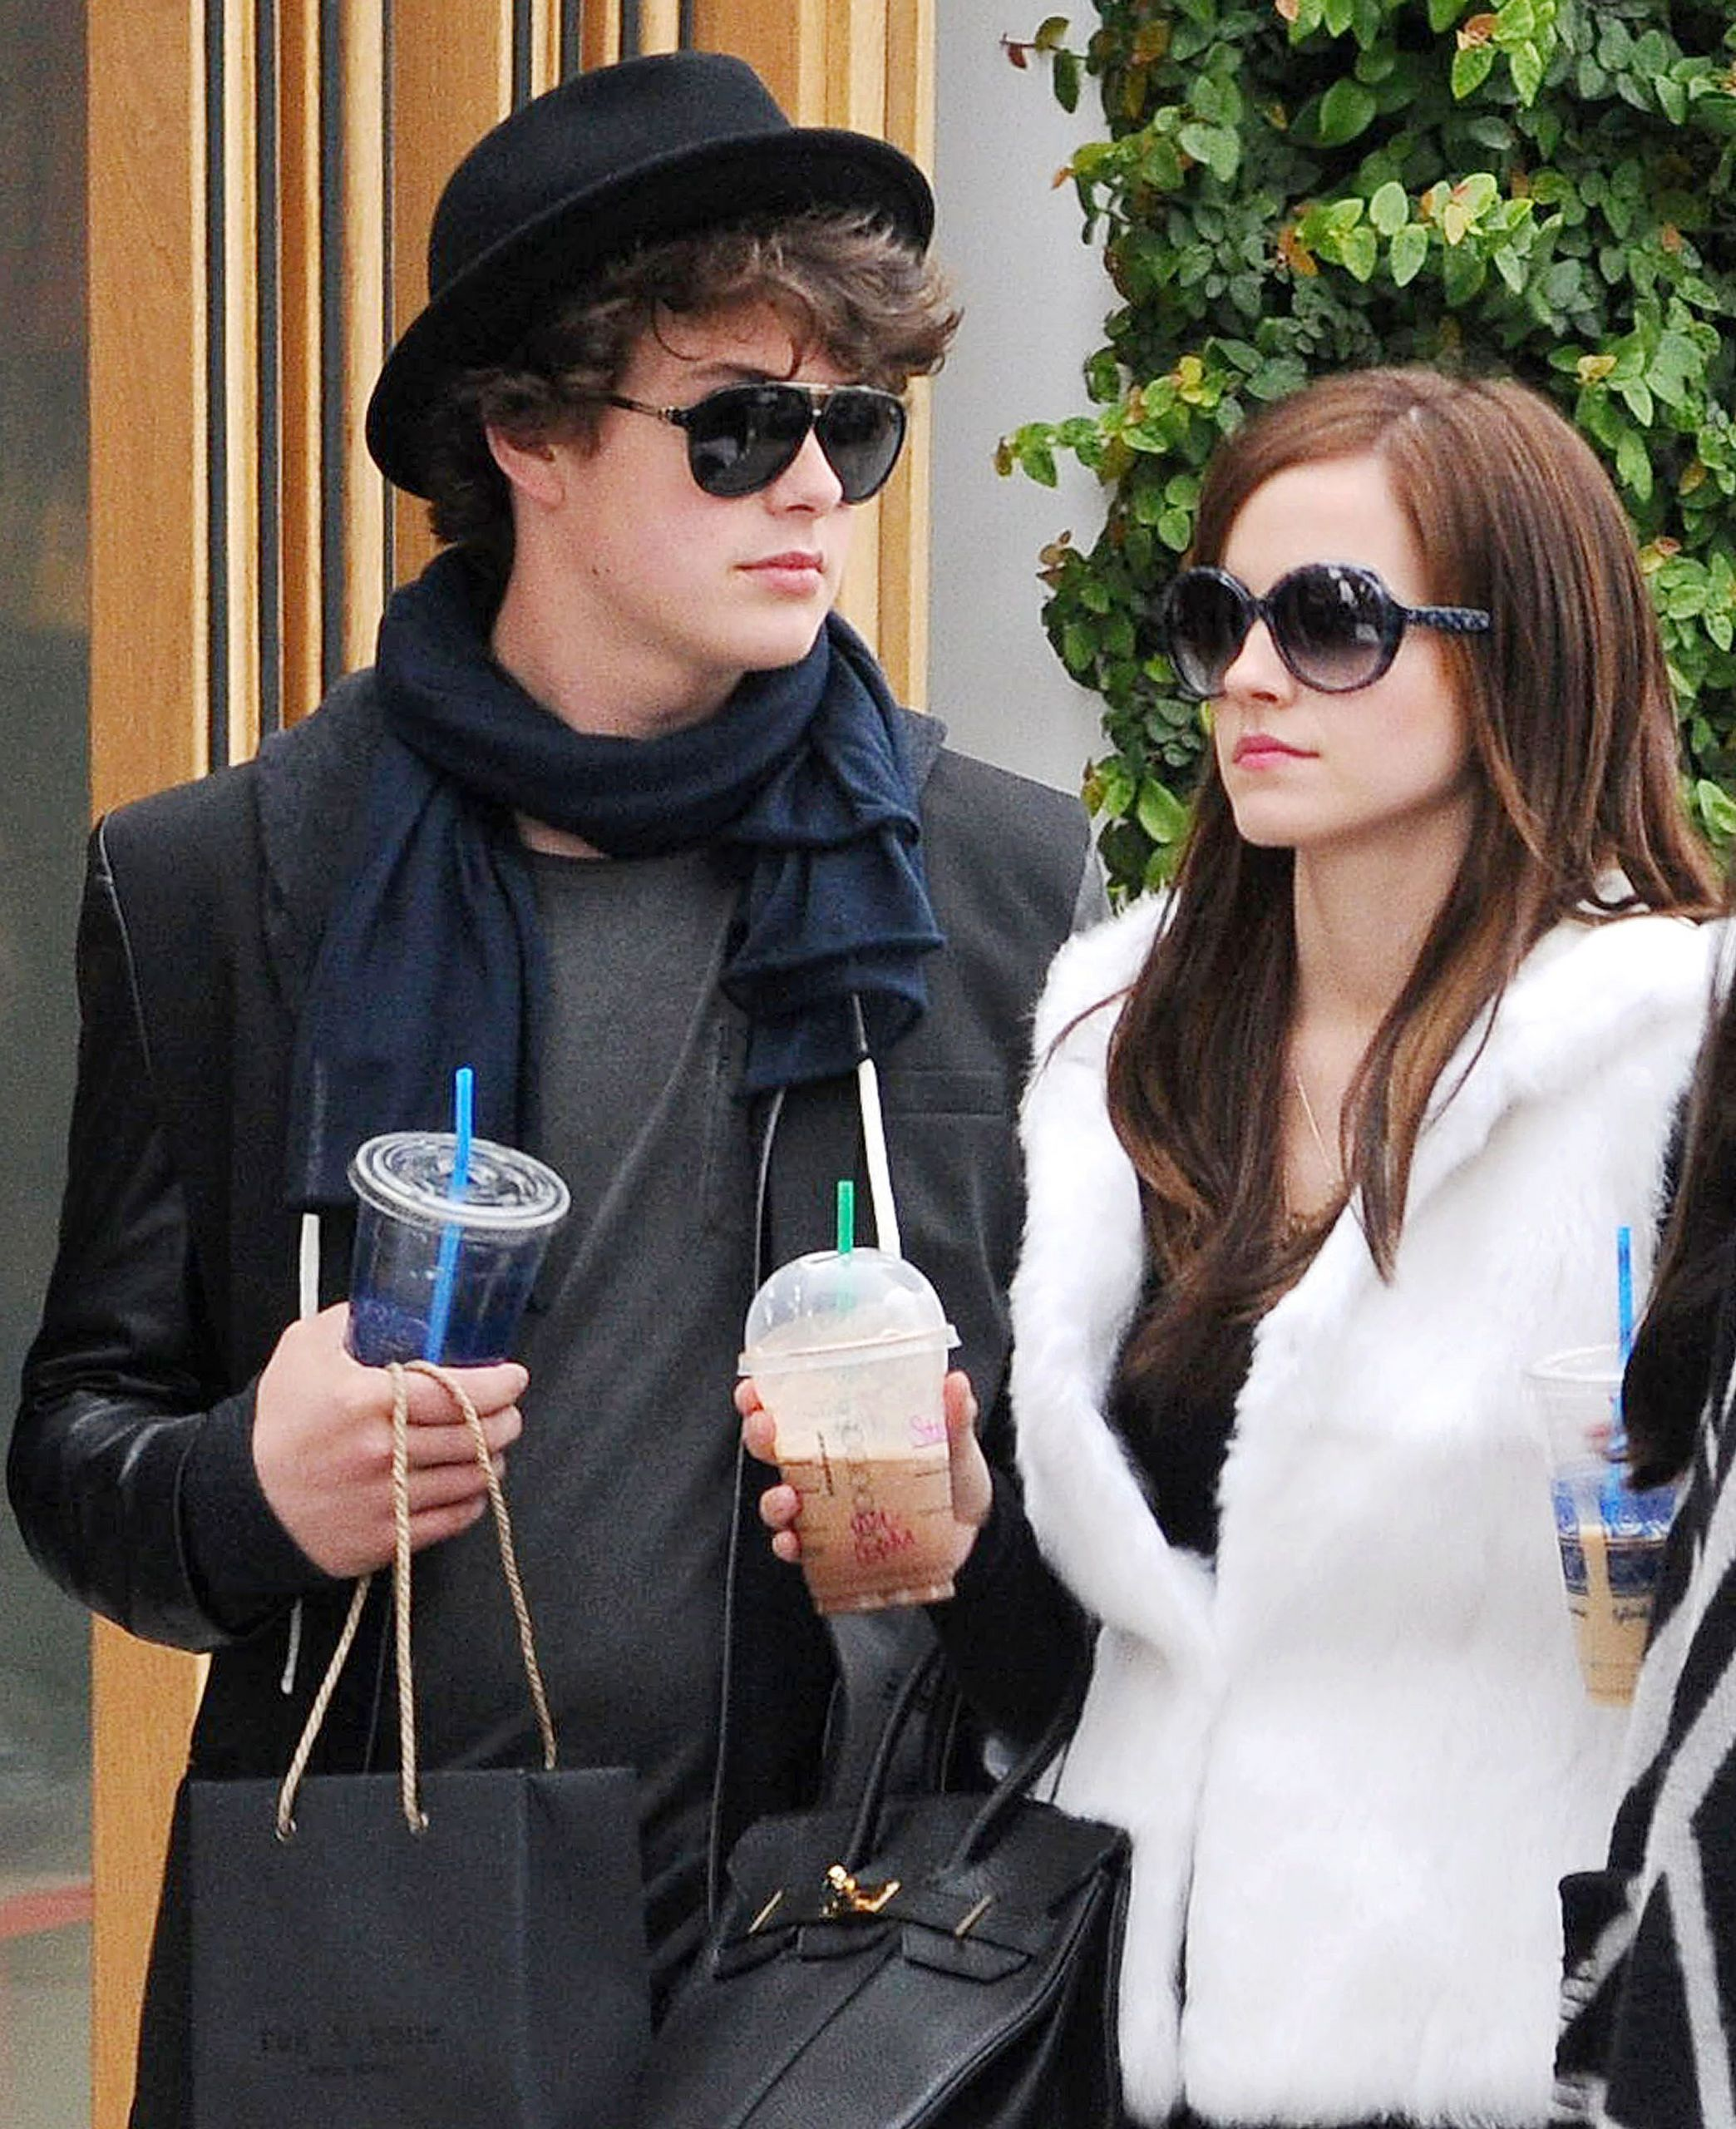 On the Set of The Bling Ring - April 11, 2012